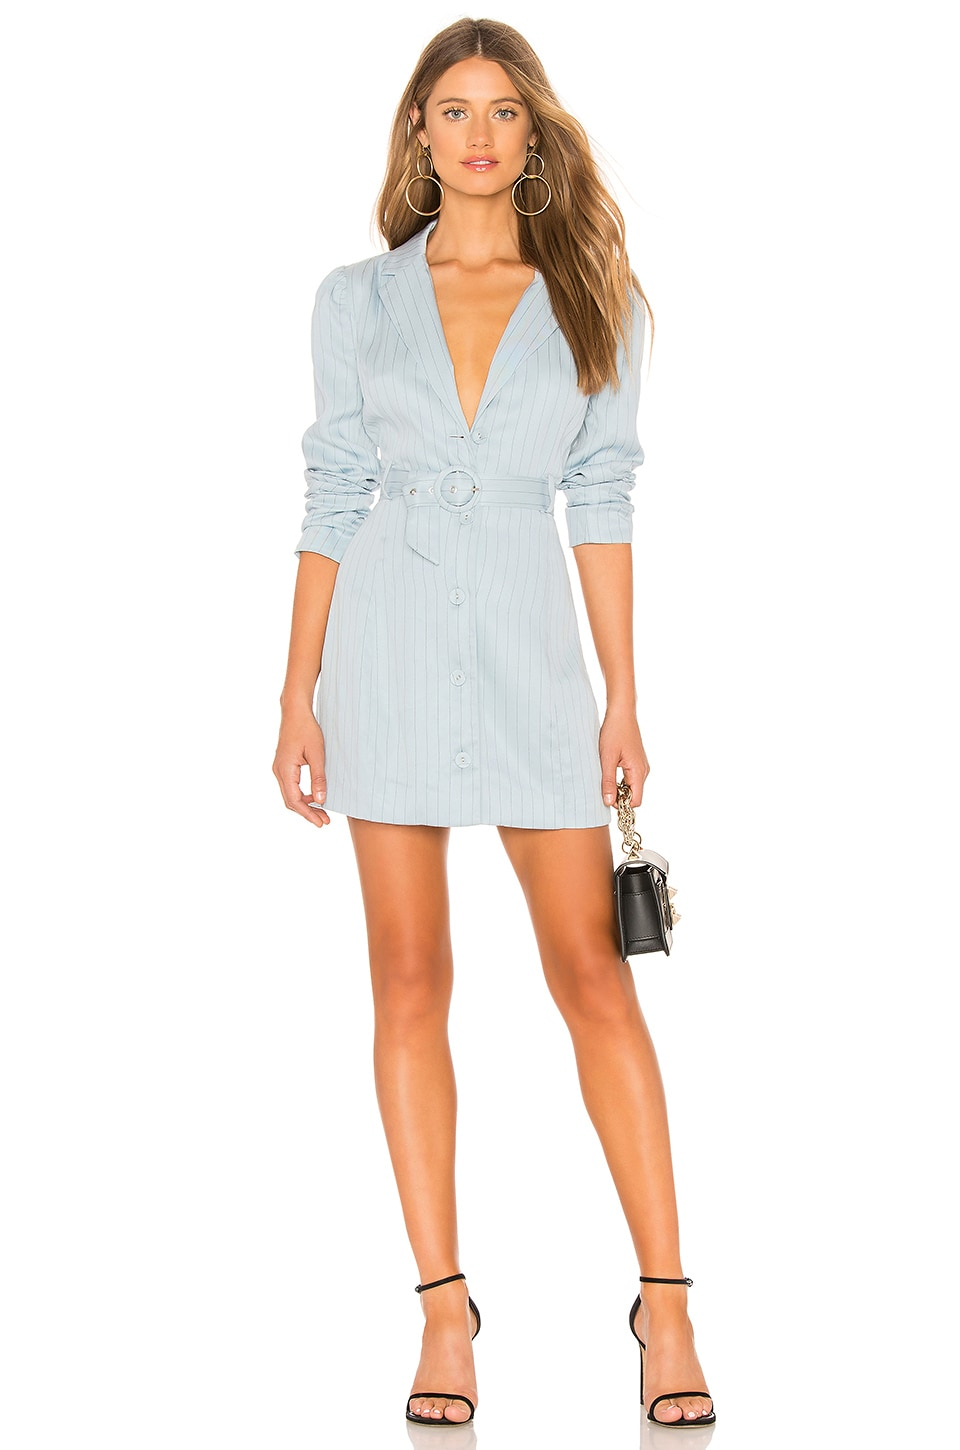 MAJORELLE Oakwood Mini Dress in Powder Blue